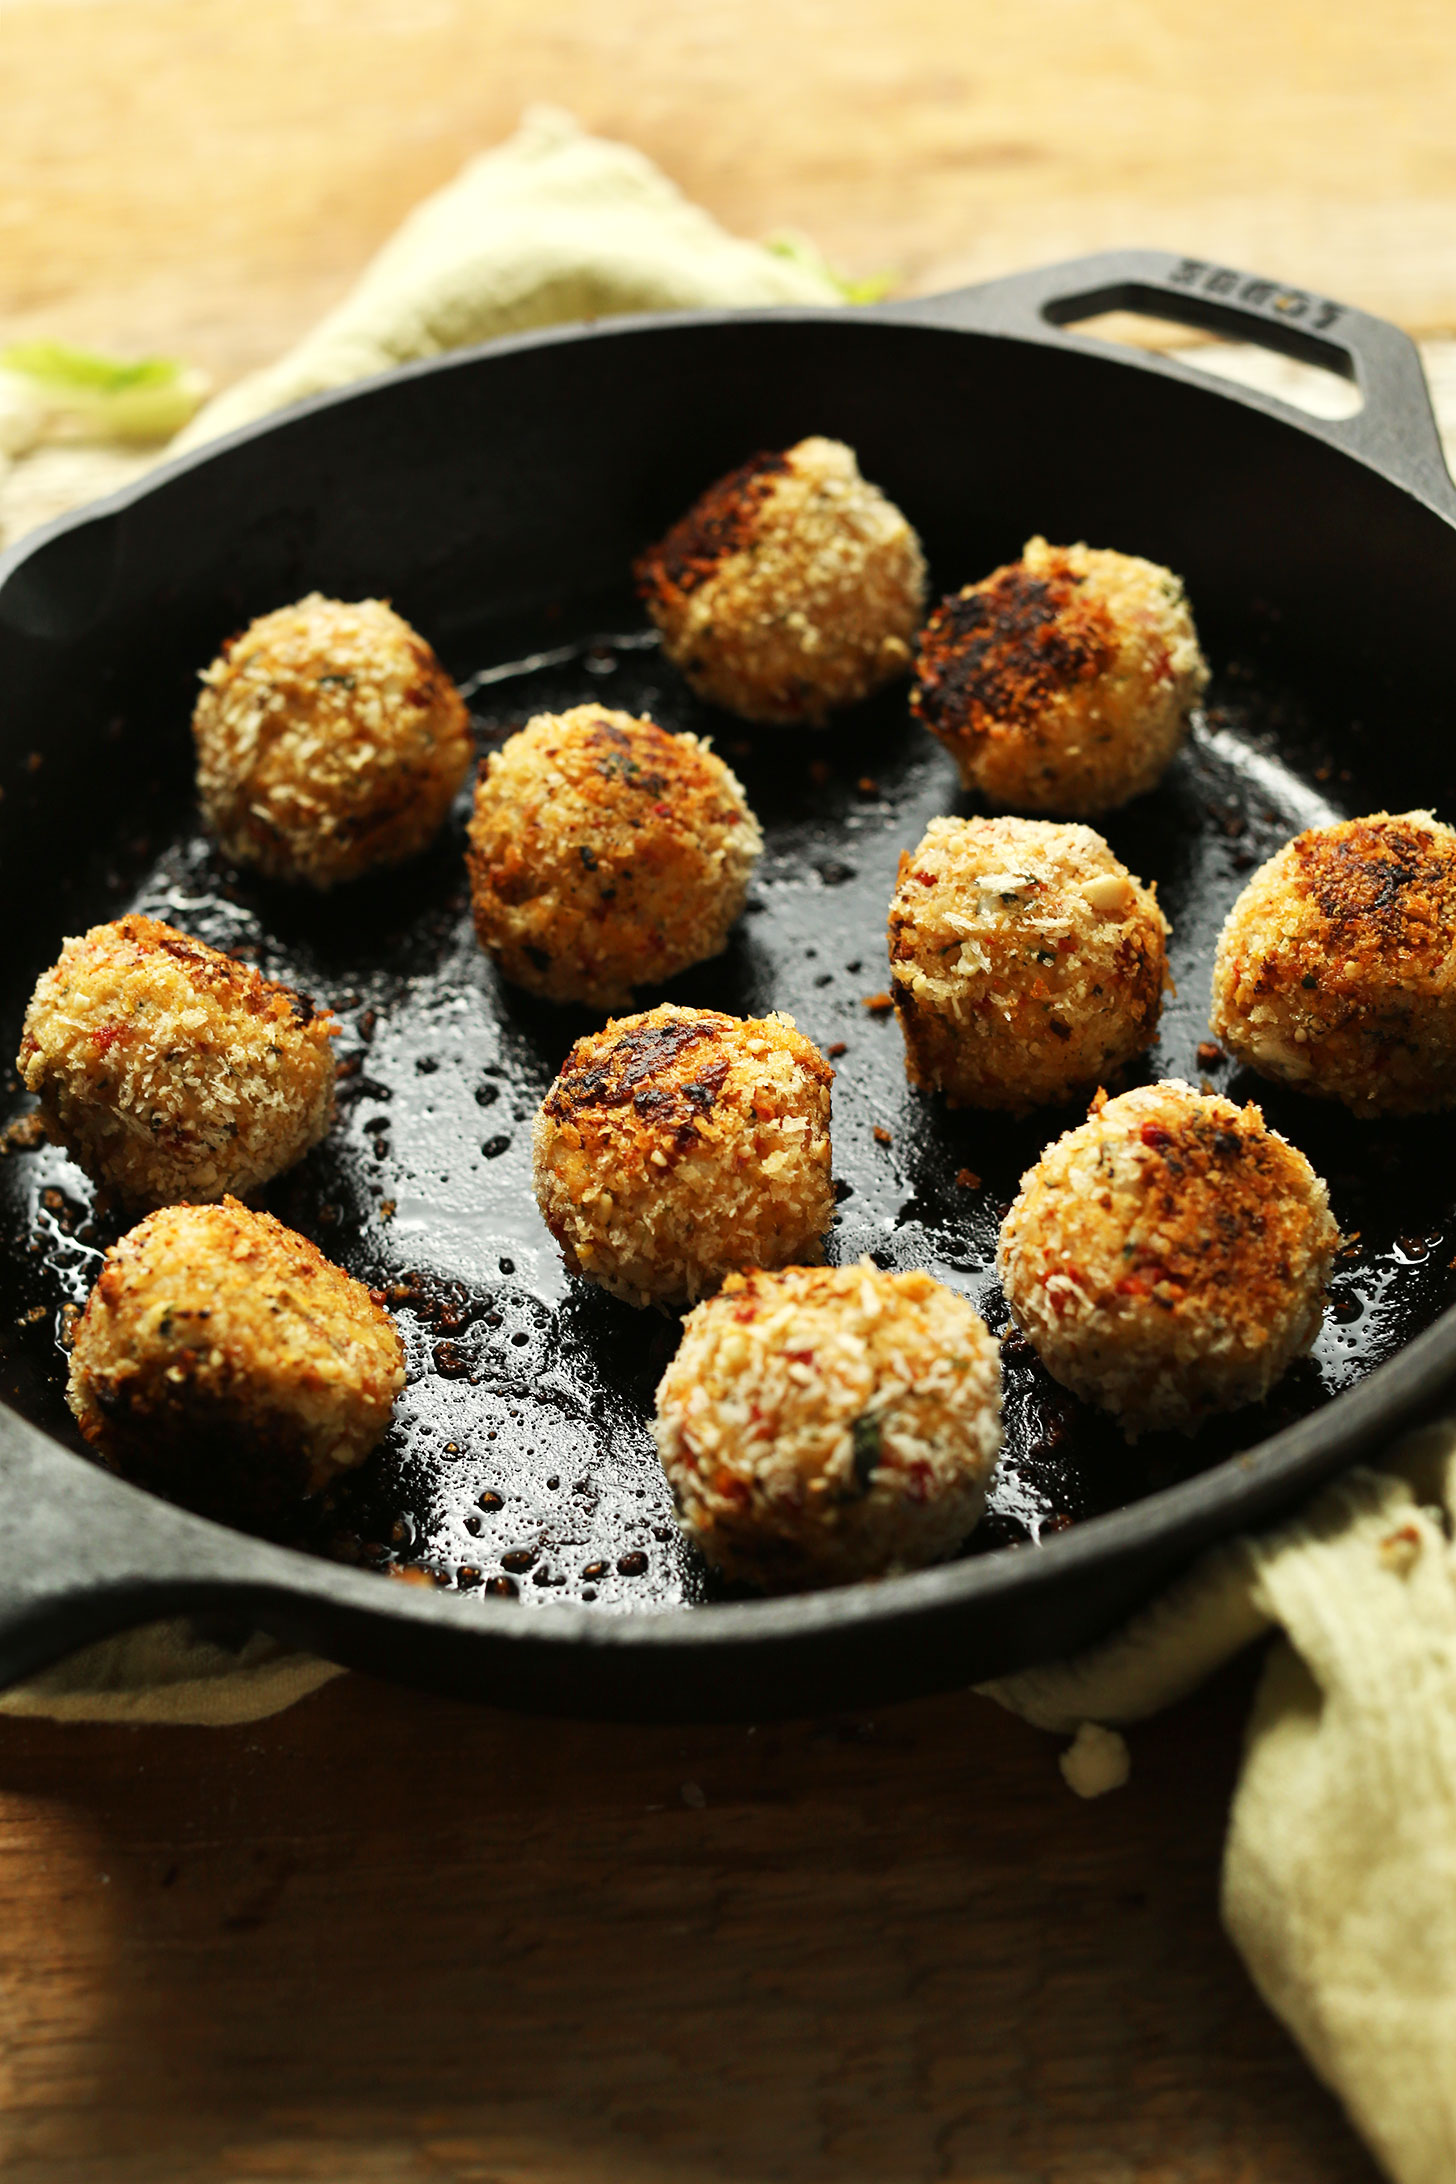 Cooking homemade Vegan Arancini in a cast-iron skillet